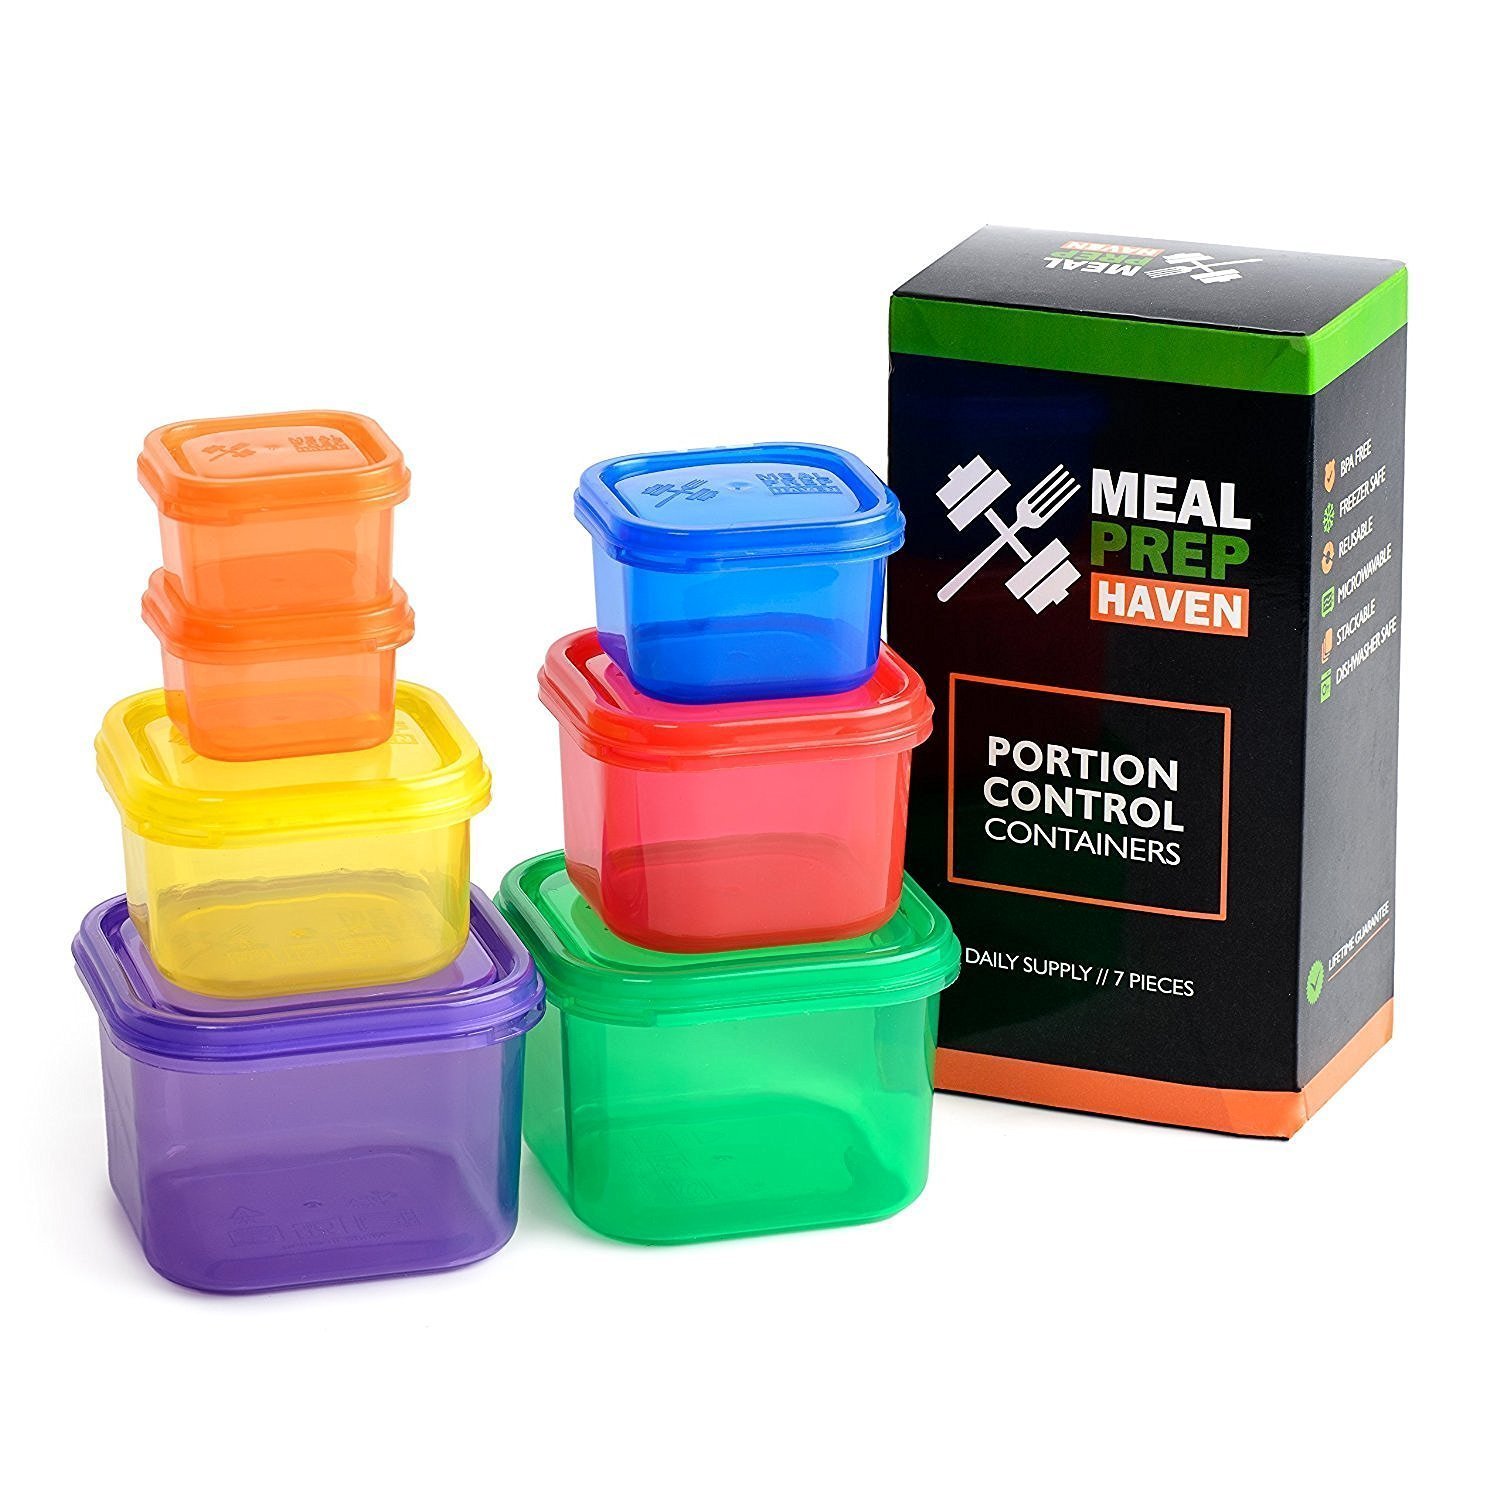 Meal Prep Haven 7 Piece Portion Control Container Kit with Guide, Black, Comparable to 21 Day Fix MP-PC7PC